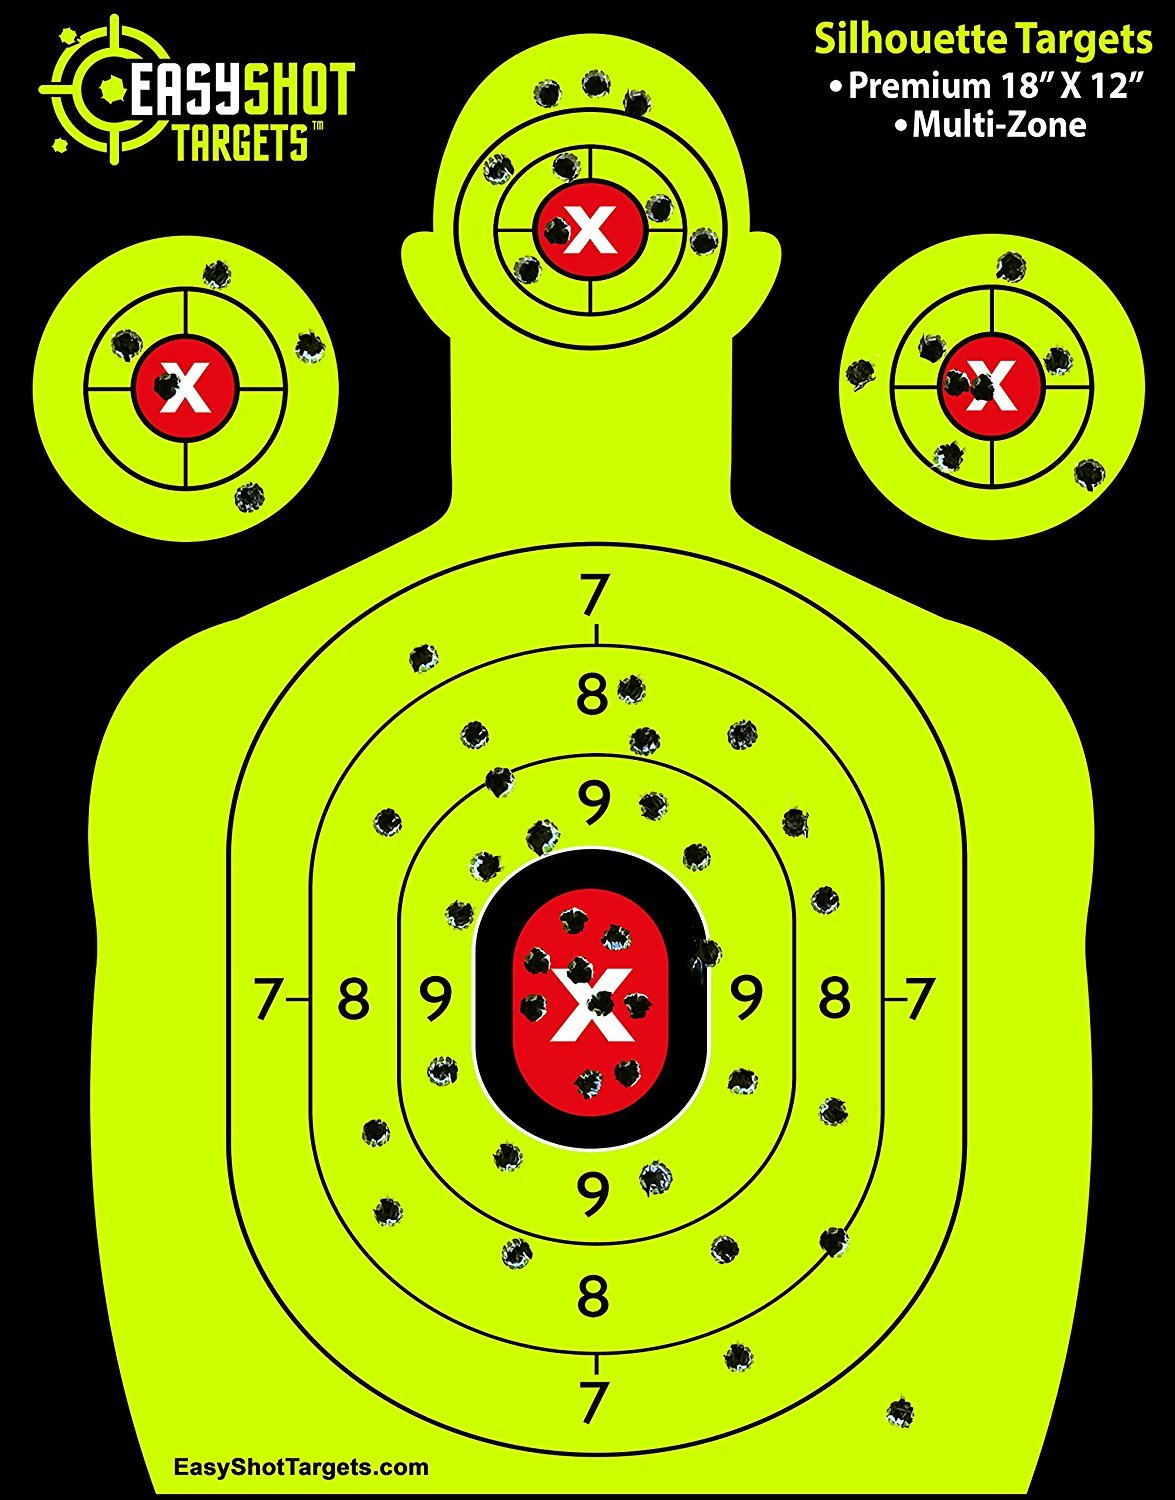 EASYSHOT Shooting Targets 18 X 12 inch. Shots are Easy to See with Our High-Vis Neon Yellow & Red Colors. Thick Silhouette Paper Sheets for Pistols, Rifles, BB Guns, Airsoft, Pellet Guns & More. by EasyShot Targets (Image #2)